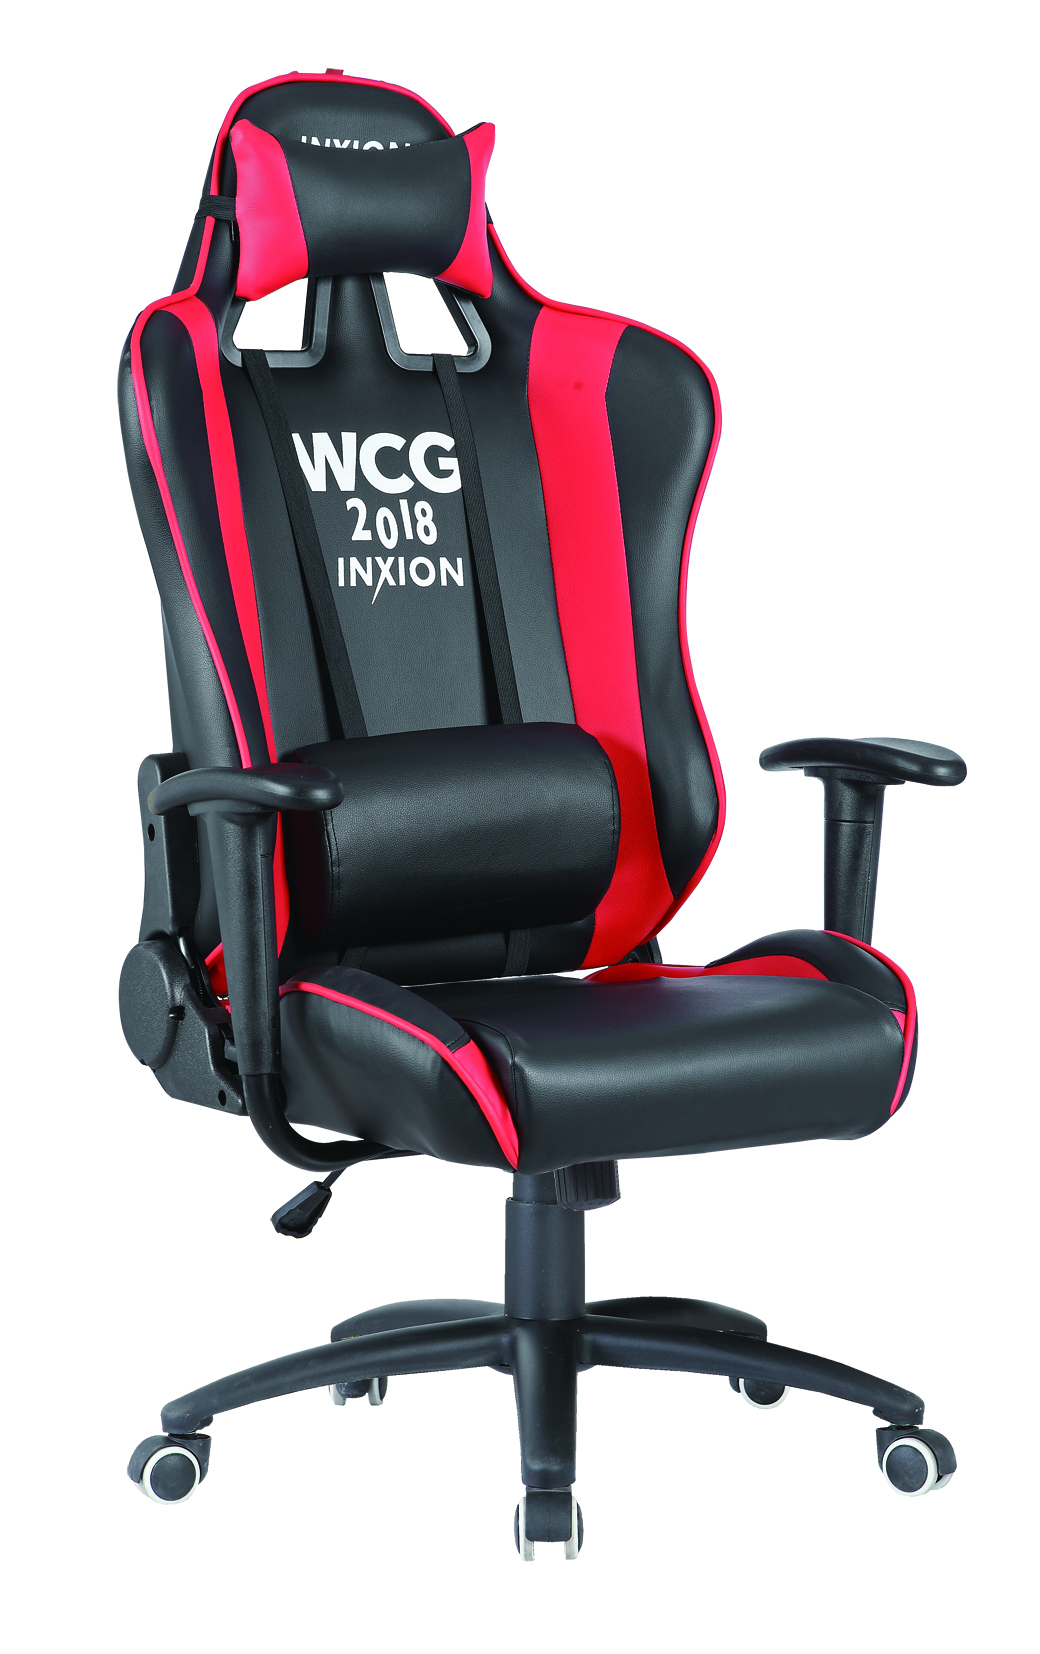 Bürostuhl Racing Recaro Office Chair Height Adjustable Racing Office Recline Leather Gaming Chair Buy Gaming Chair High Quality Office Chair Racing Chair Product On